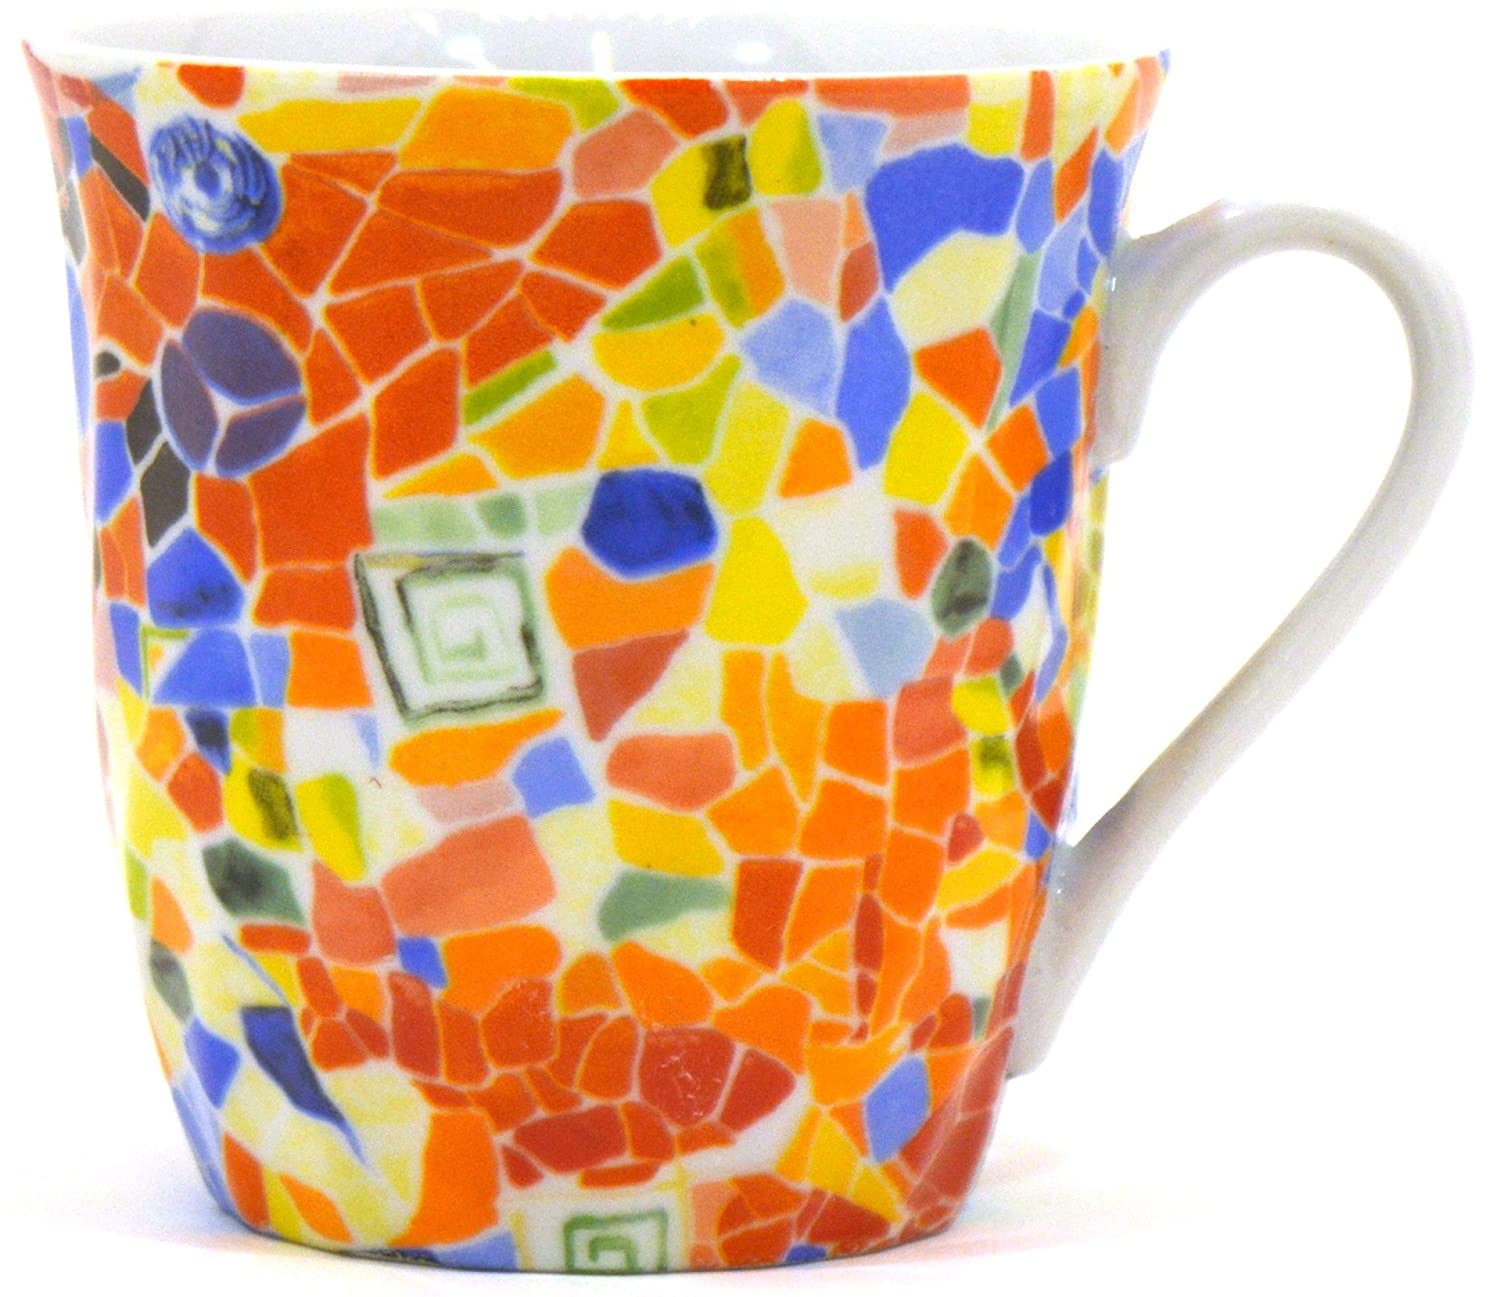 Amazon.com: ART ESCUDELLERS Porcelain Cup with Handle NEVA/Mug Abril Decorated in TRENCADIS Gaudí Style. (Colour Aurora). 4.72 x 3.74 x 3.54: Home & ...